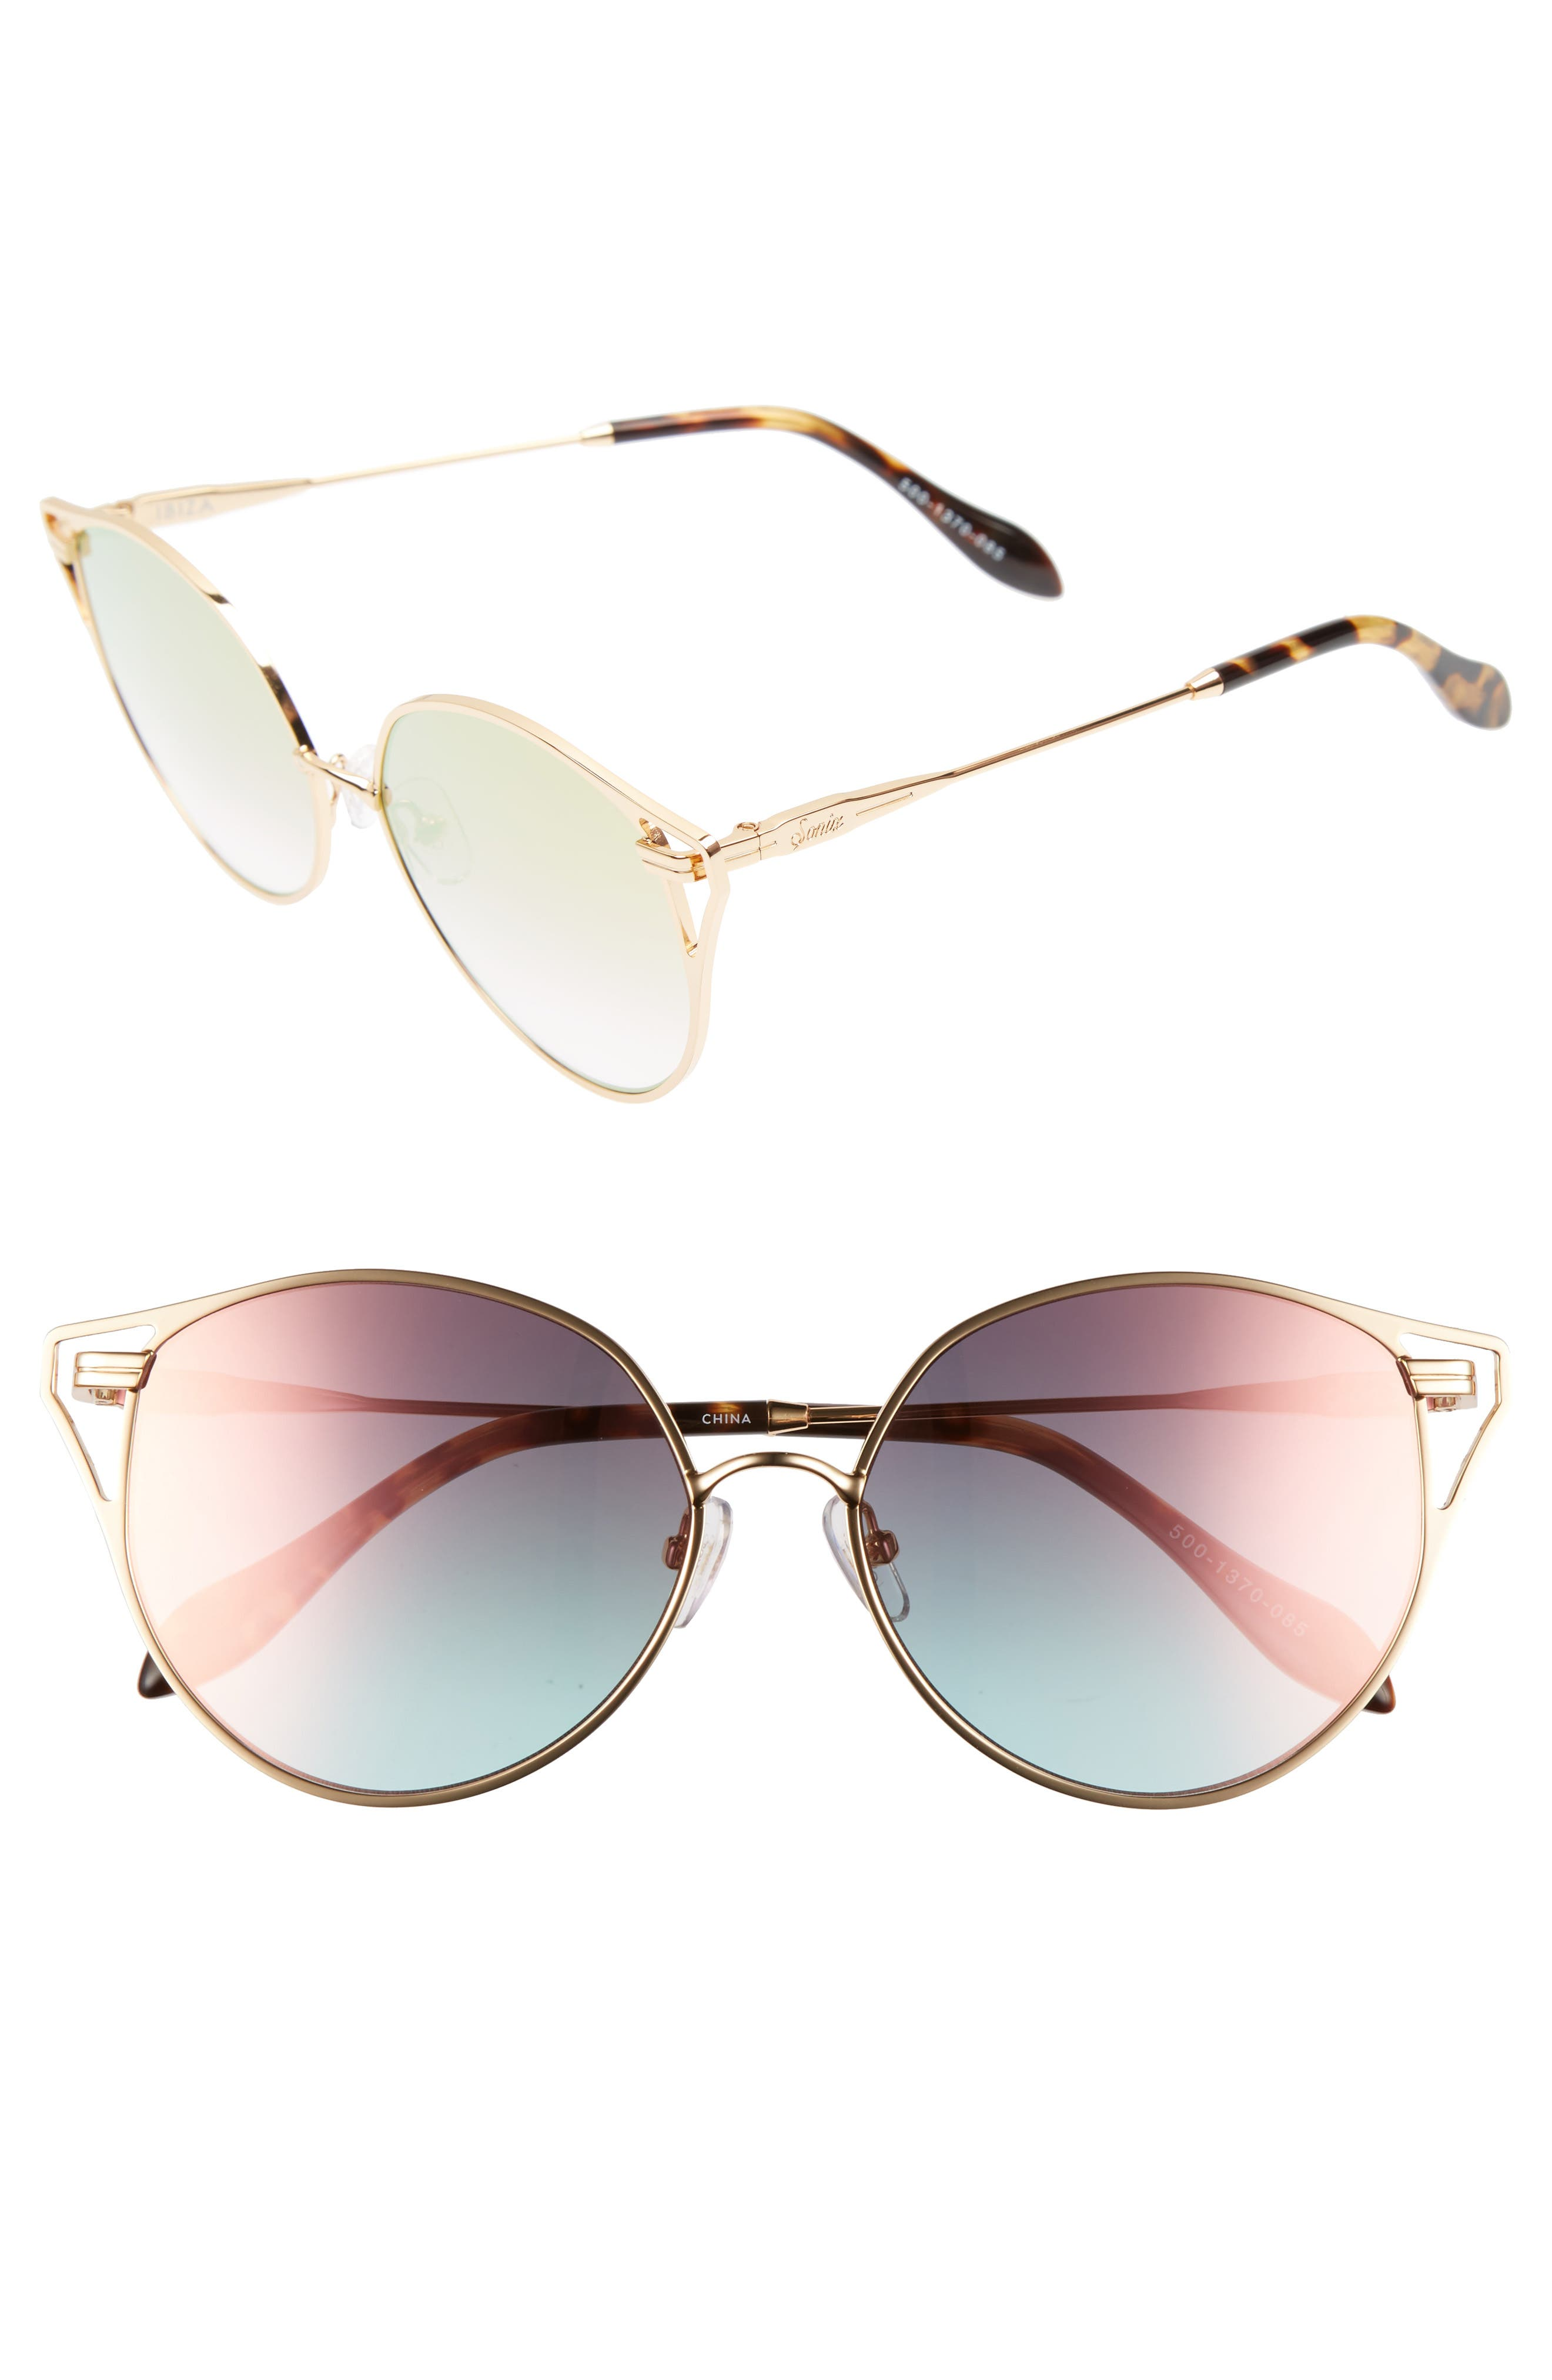 Ibiza 55mm Cat Eye Sunglasses,                             Main thumbnail 3, color,